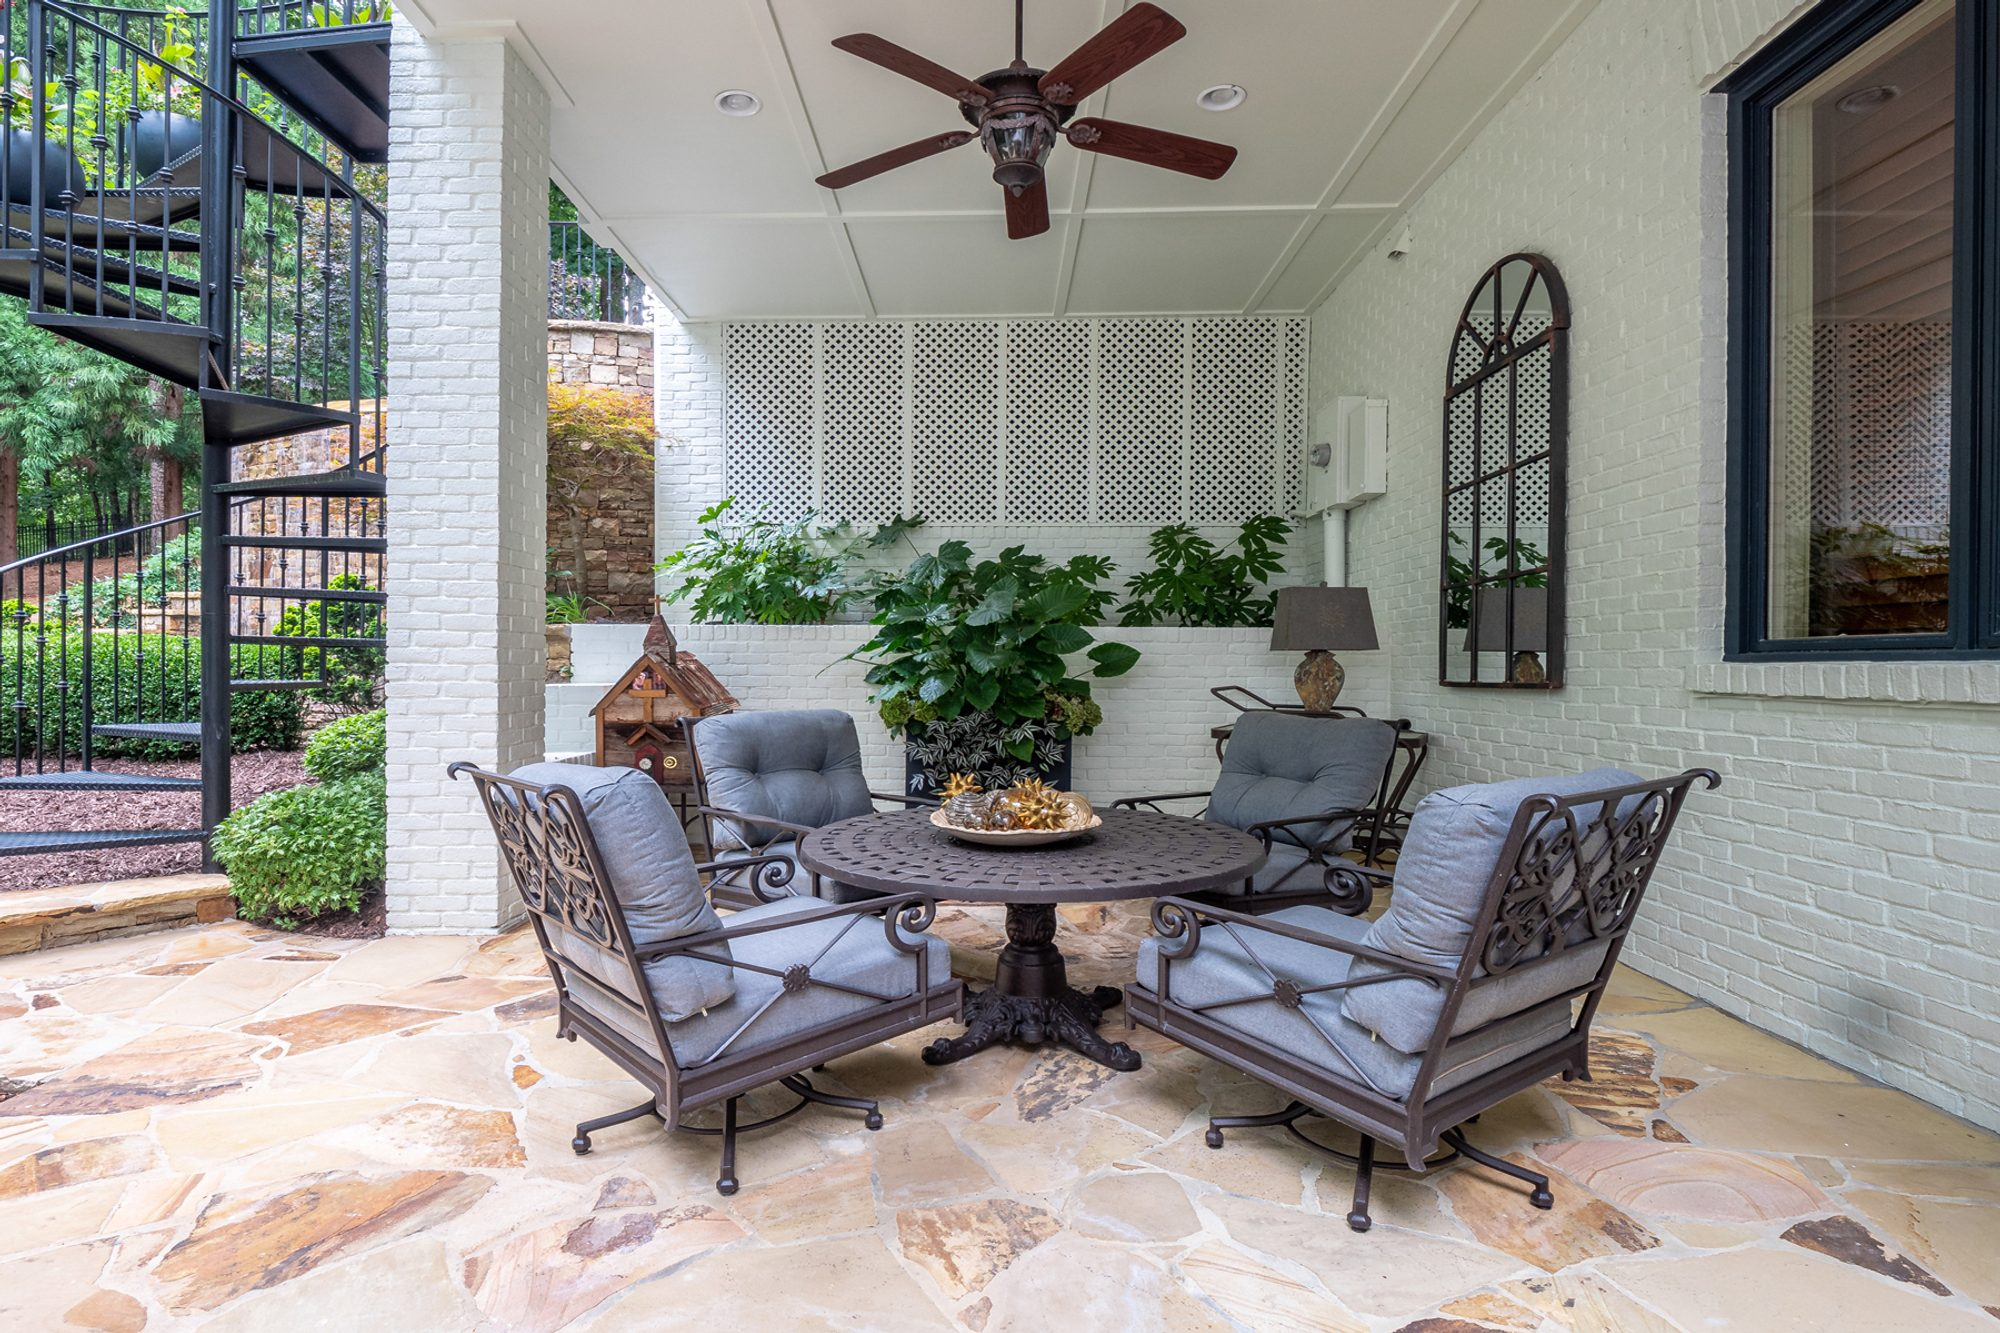 Covered back patio with painted white brick walls and columns.